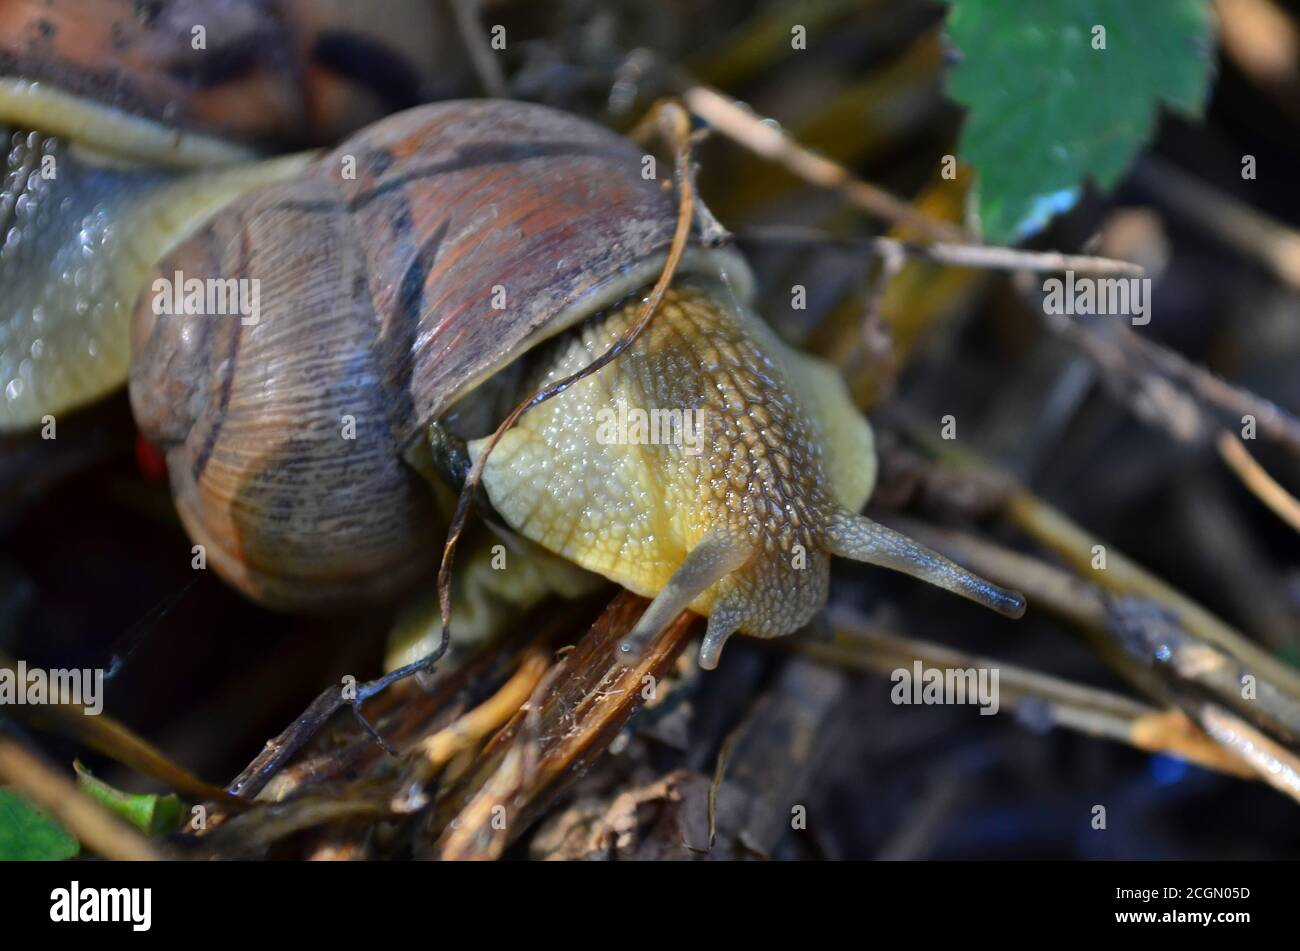 Gastropod. Common garden snail crawling on dry branches. Fauna of Ukraine. Shallow depth of field, closeup. Stock Photo